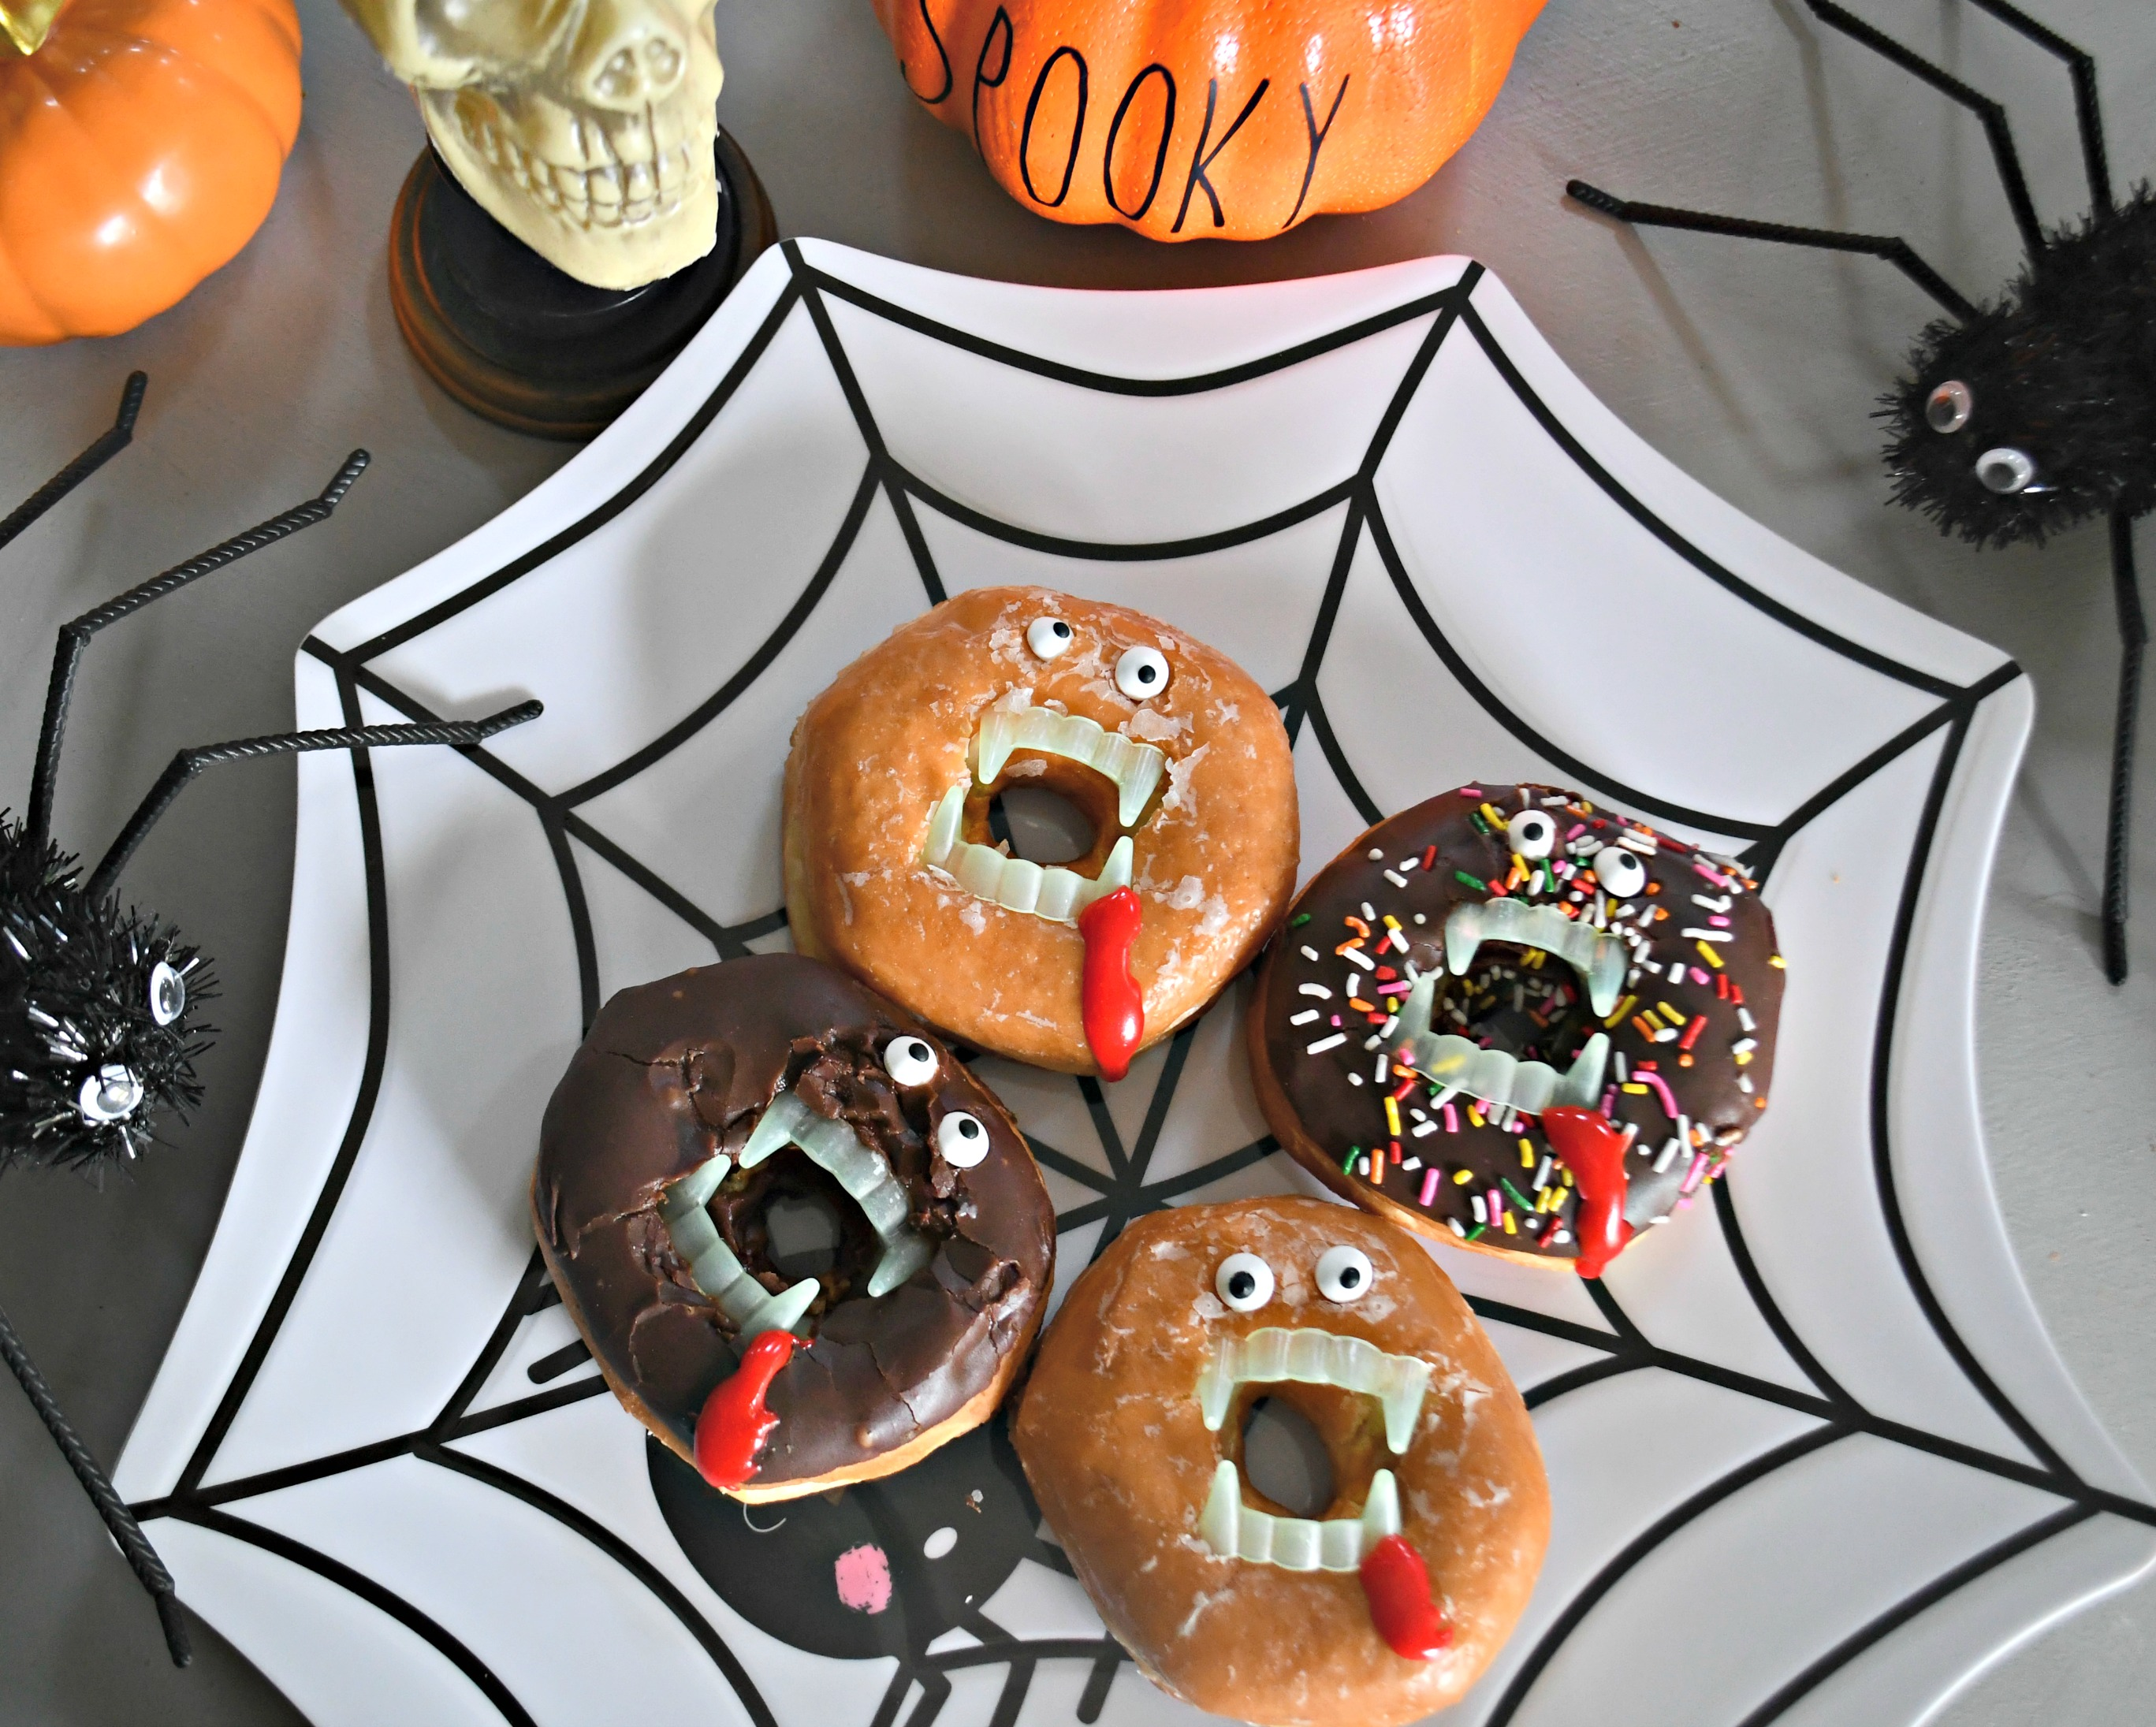 These Spooky Vampire Donuts Halloween Treats are an easy and fun idea – displayed on a plate